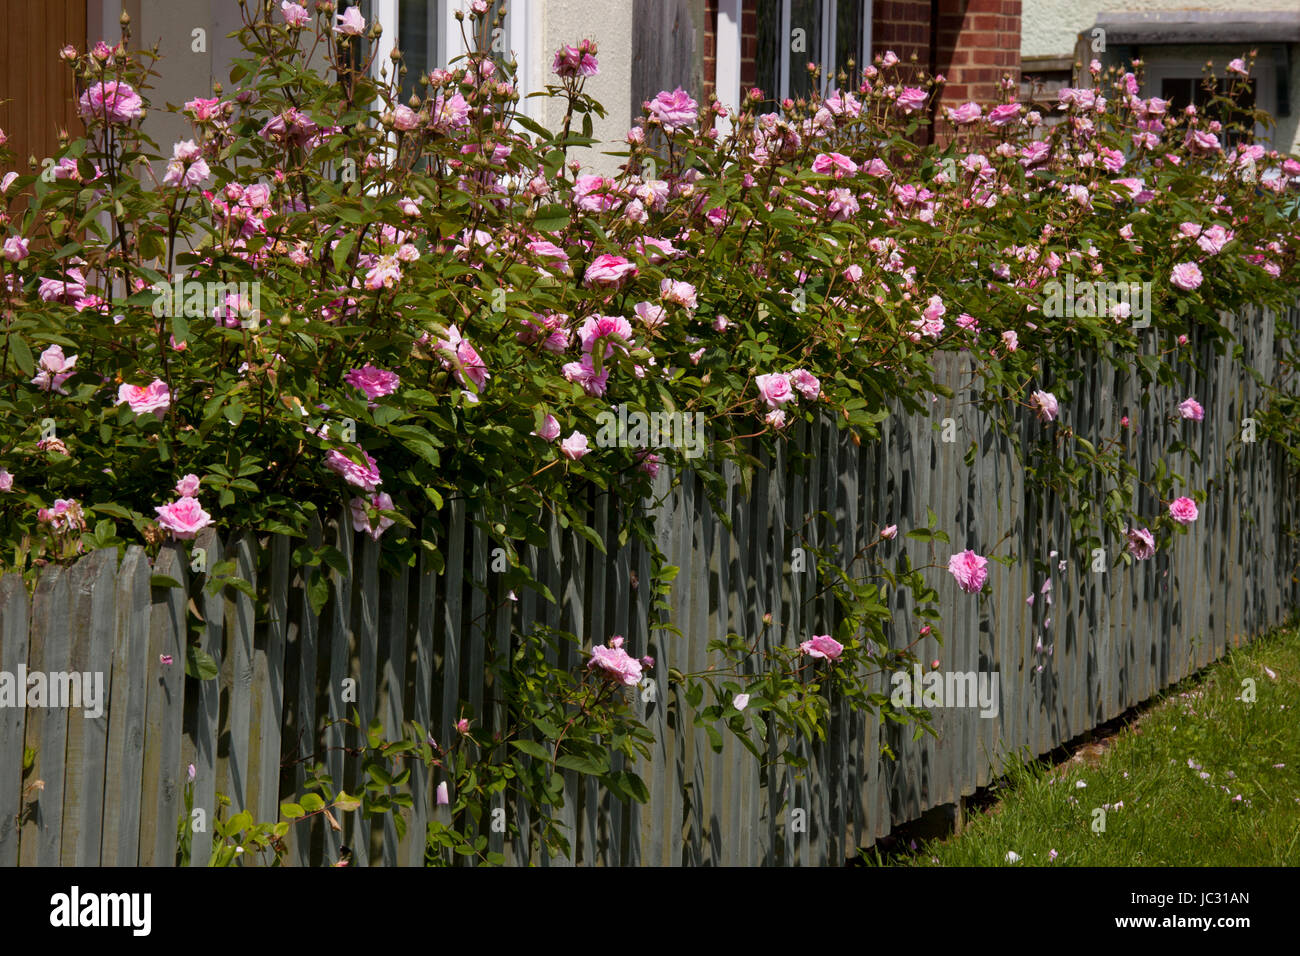 climbing pink roses over a cottage picket fence, England - Stock Image